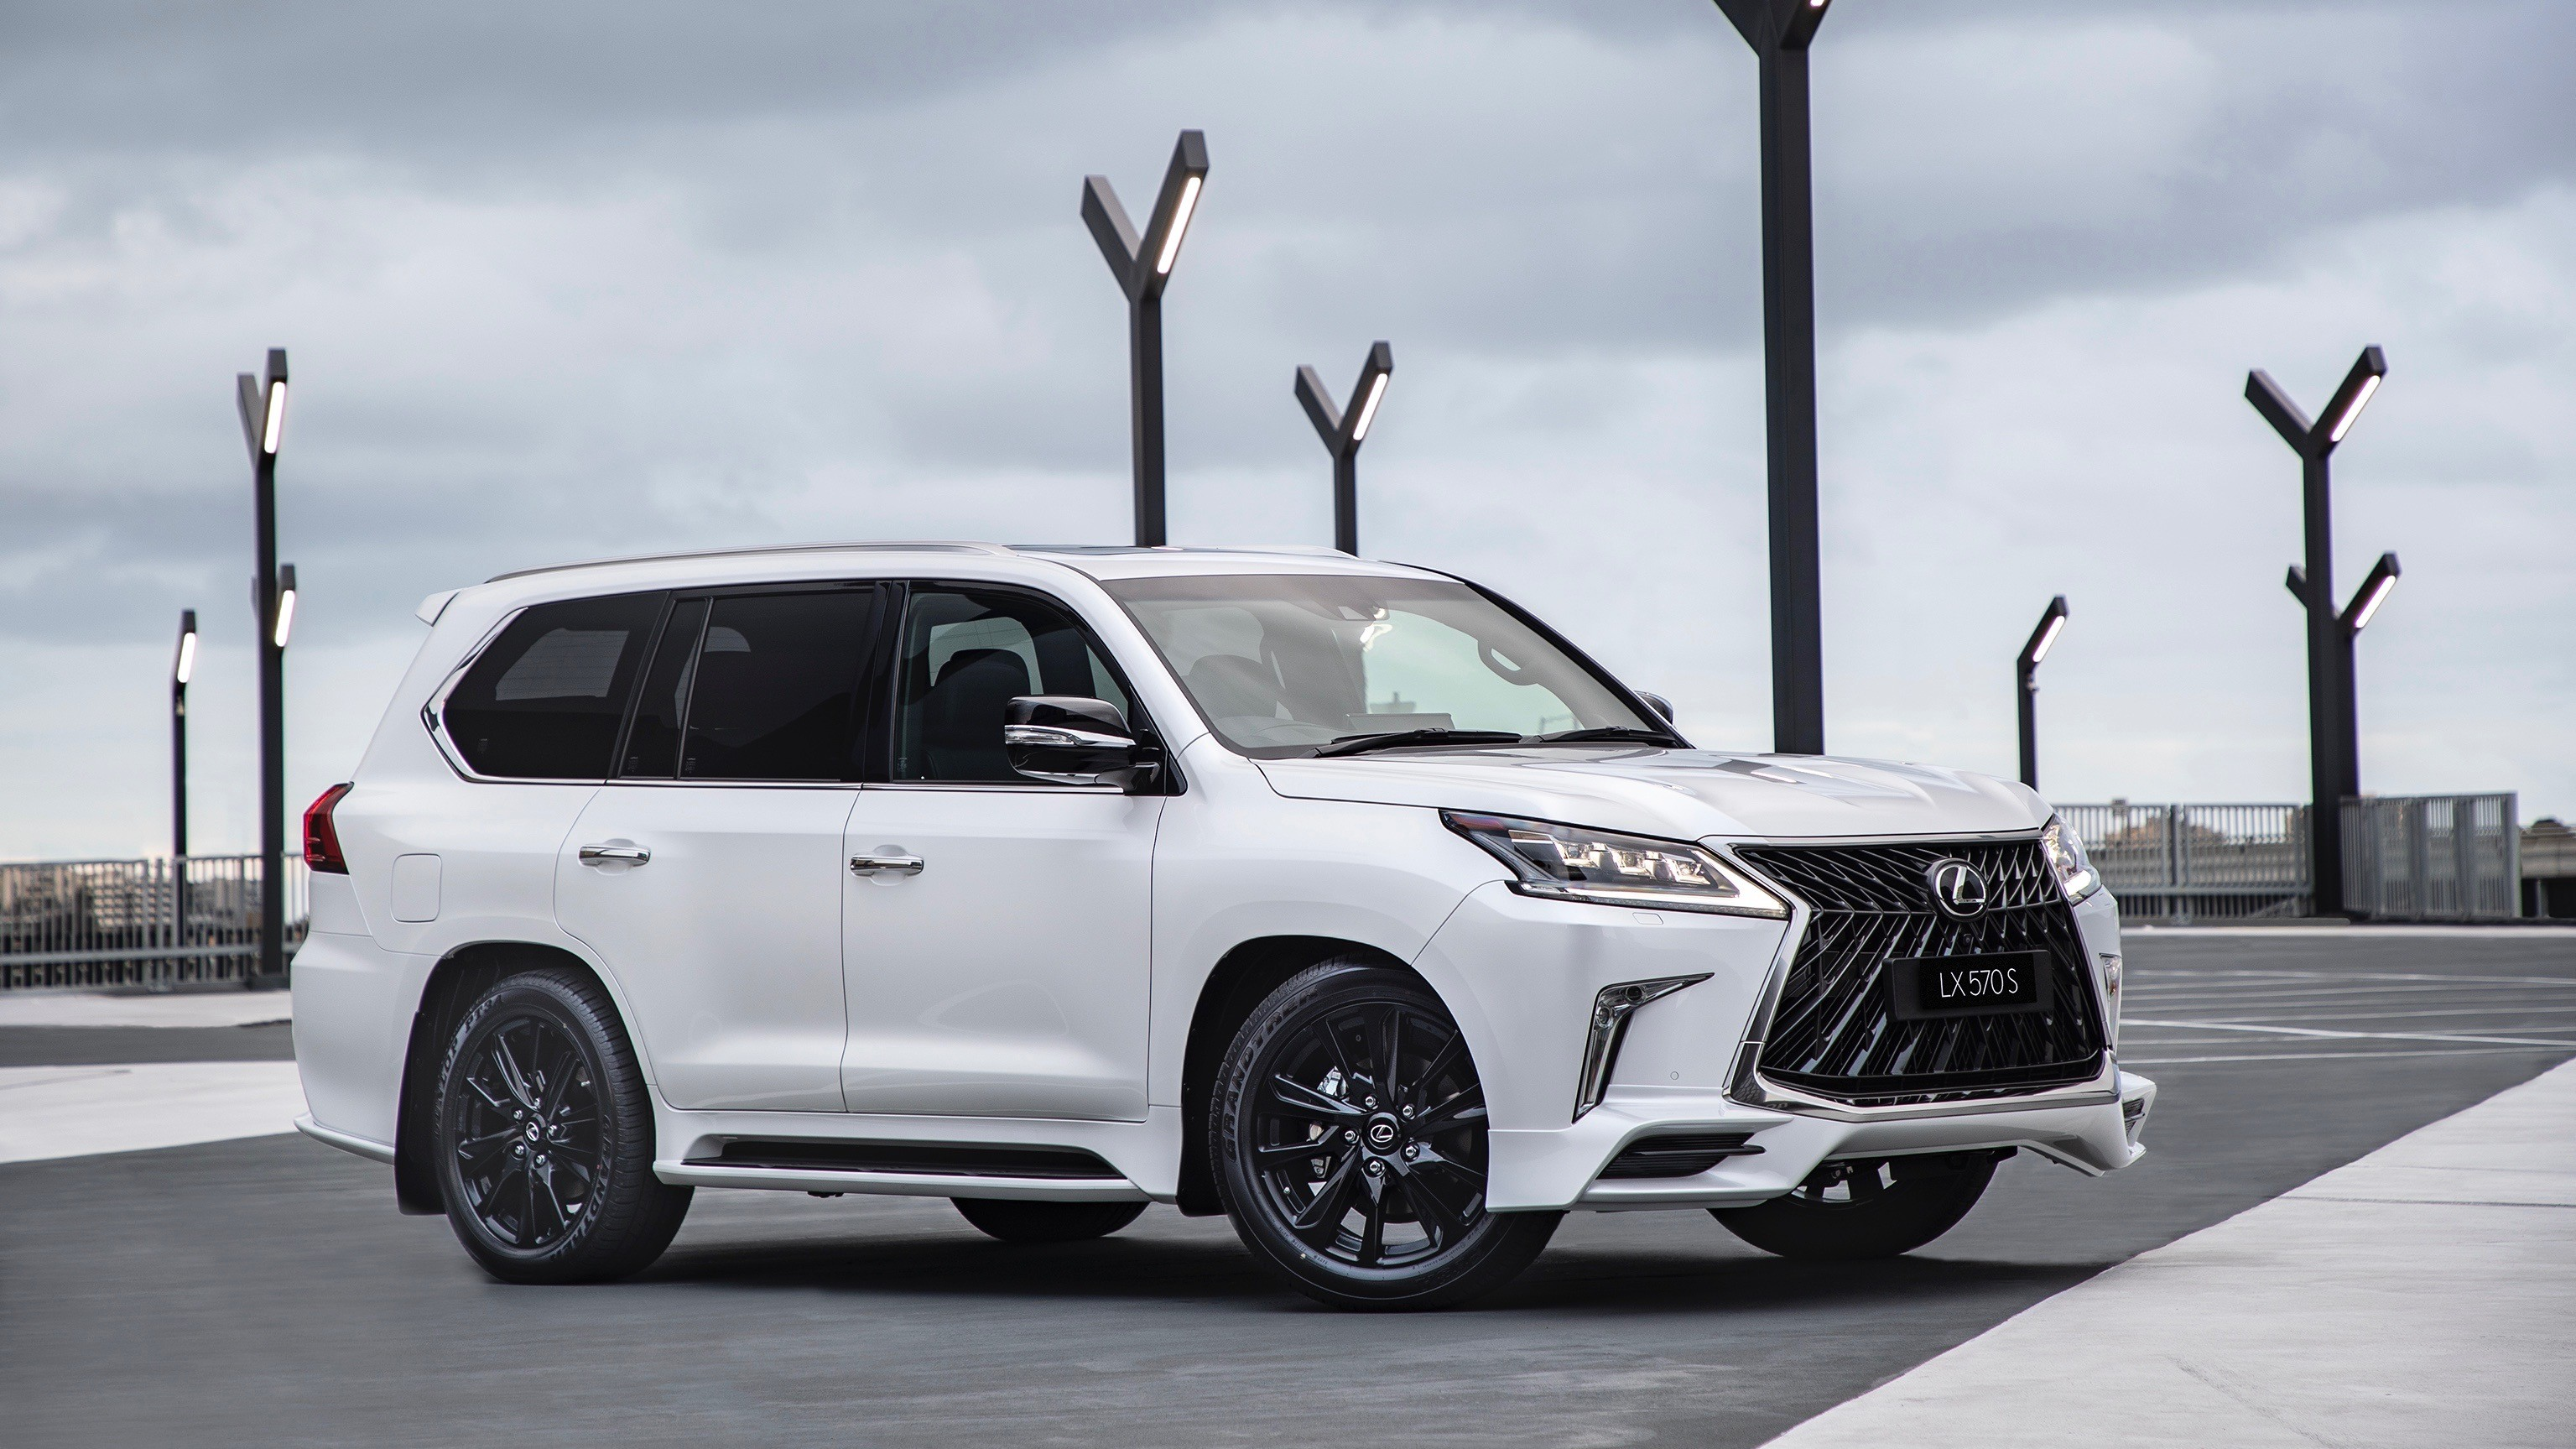 ... 2019 Lexus LX 570 S Debuts In Australia With Angry Body Kit ...